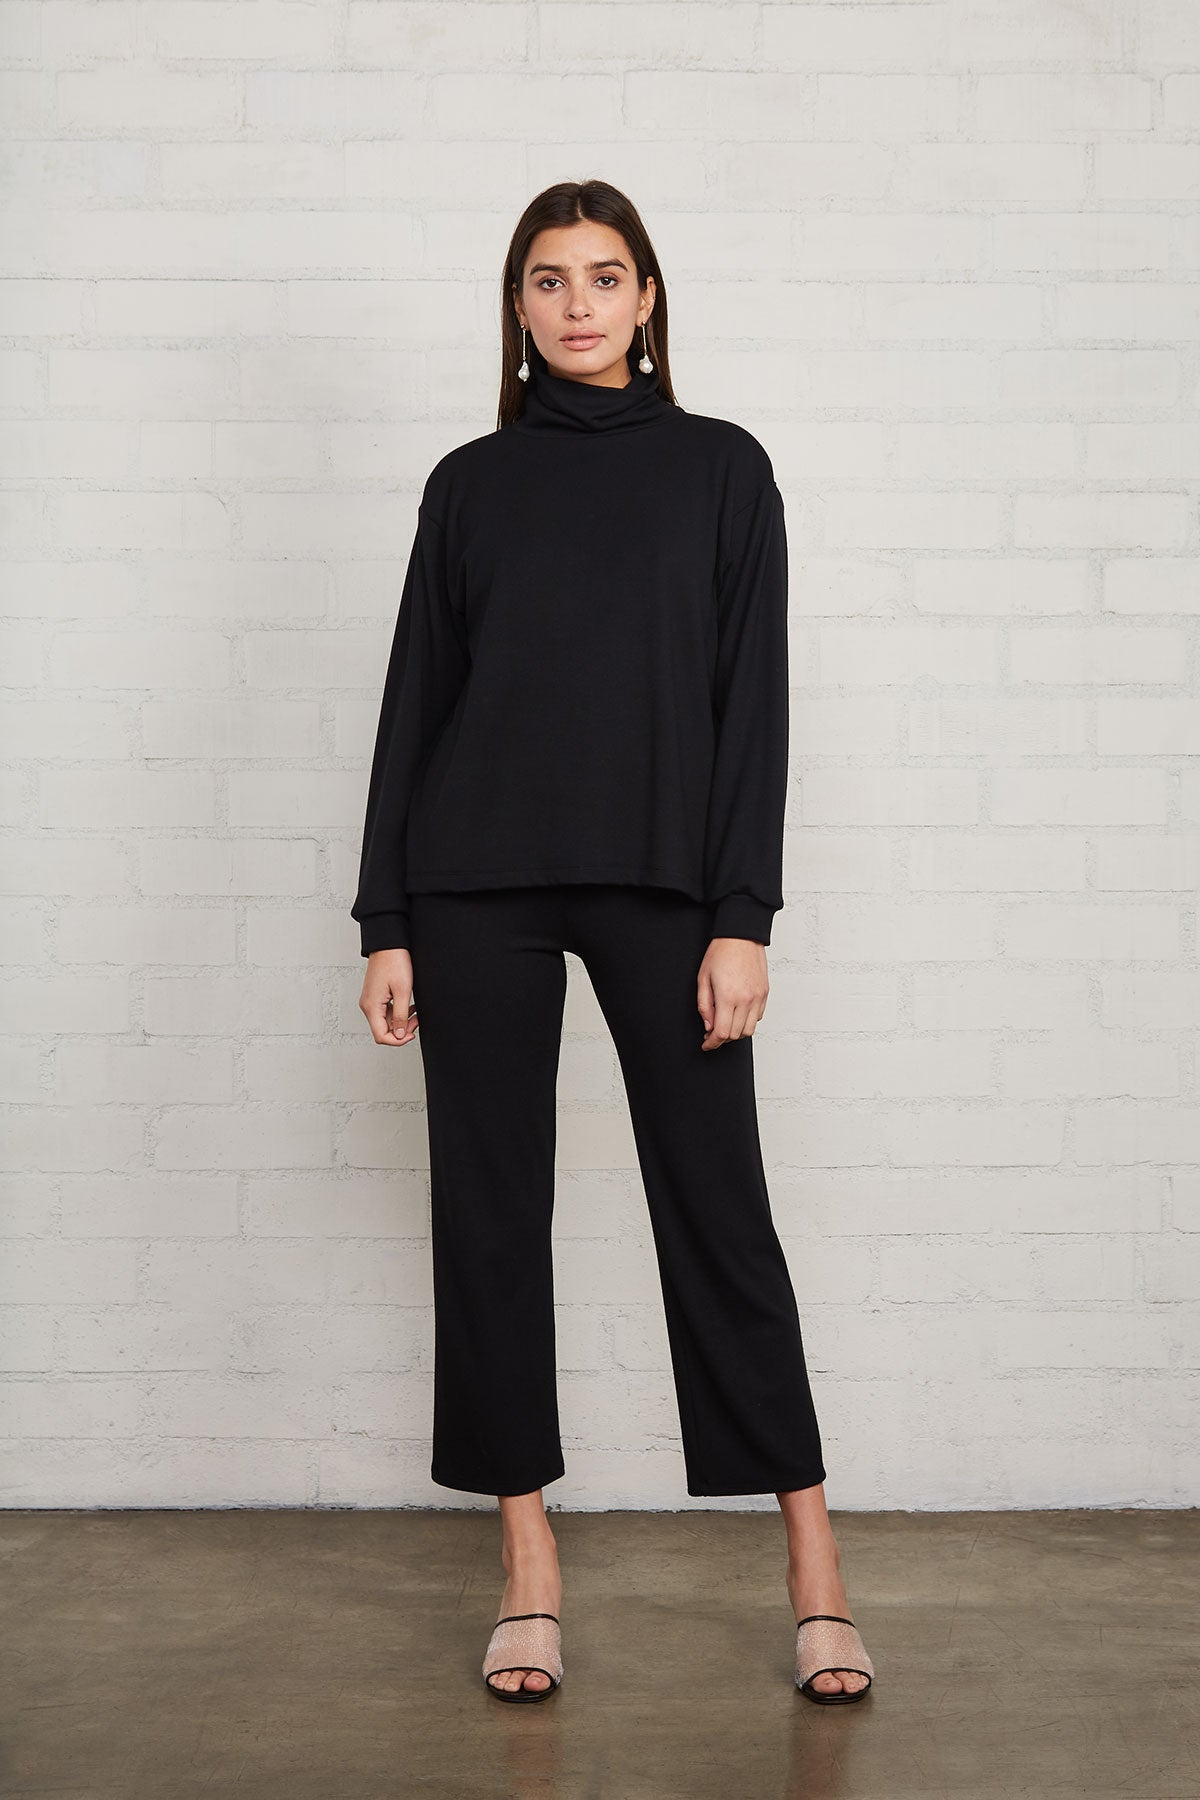 Luxe Rib Dionne Pant - Black